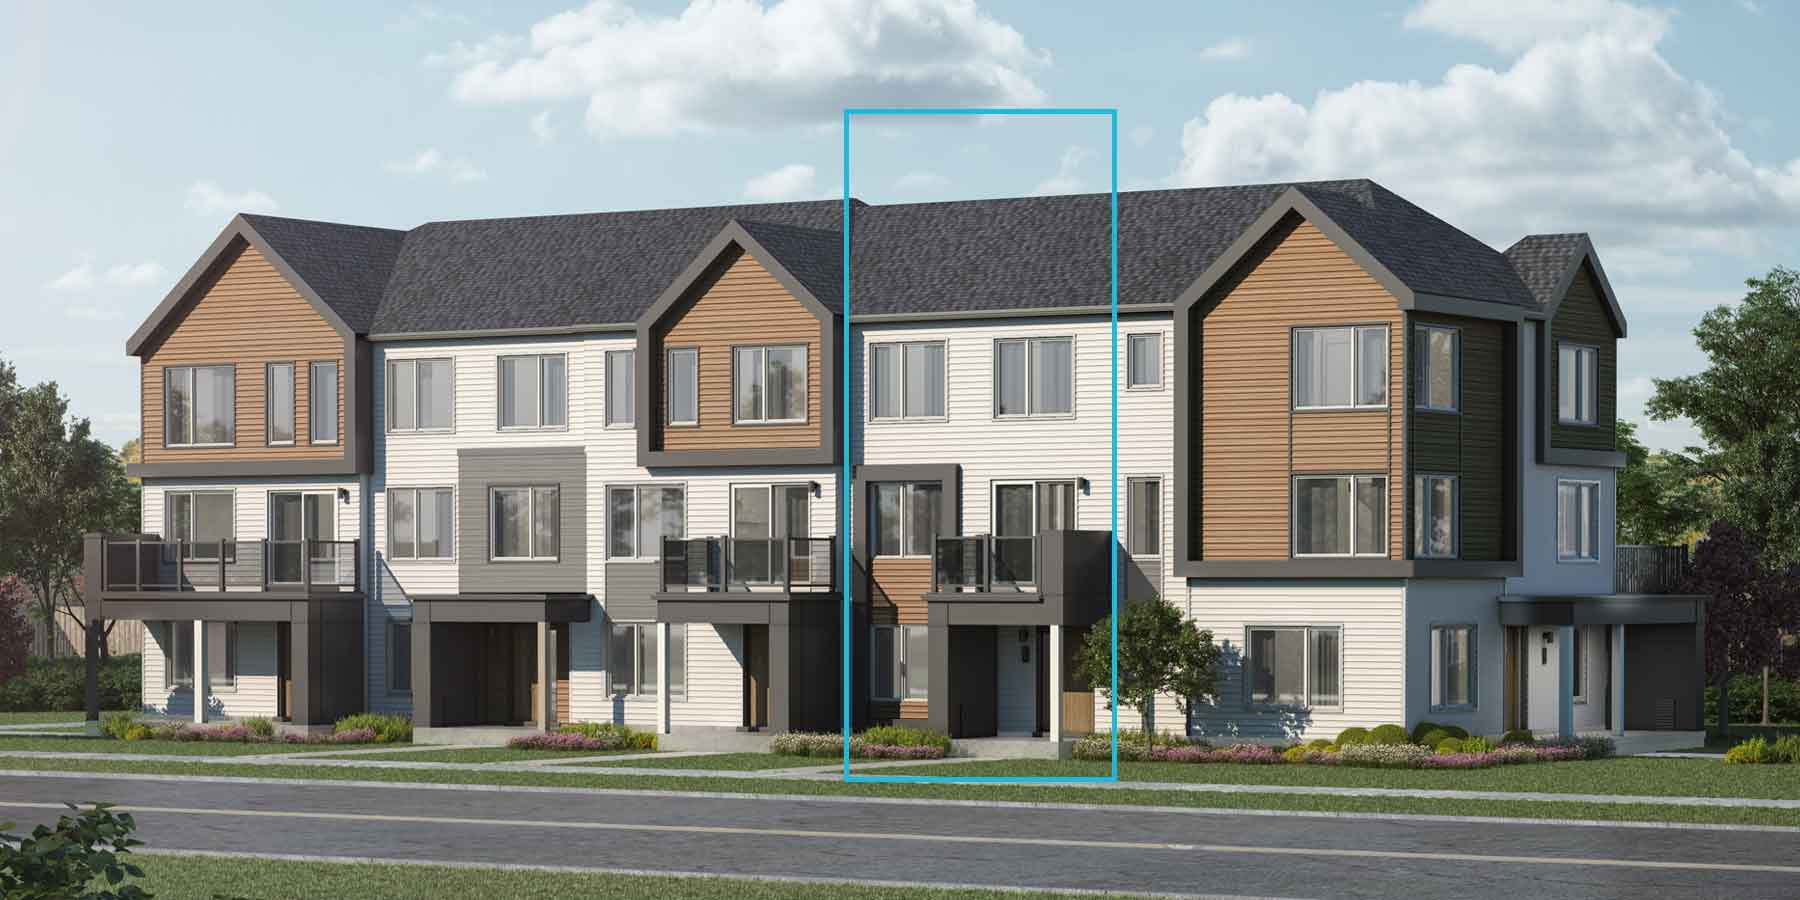 Brentland Plan TownHomes at Promenade in Barrhaven Ontario by Mattamy Homes